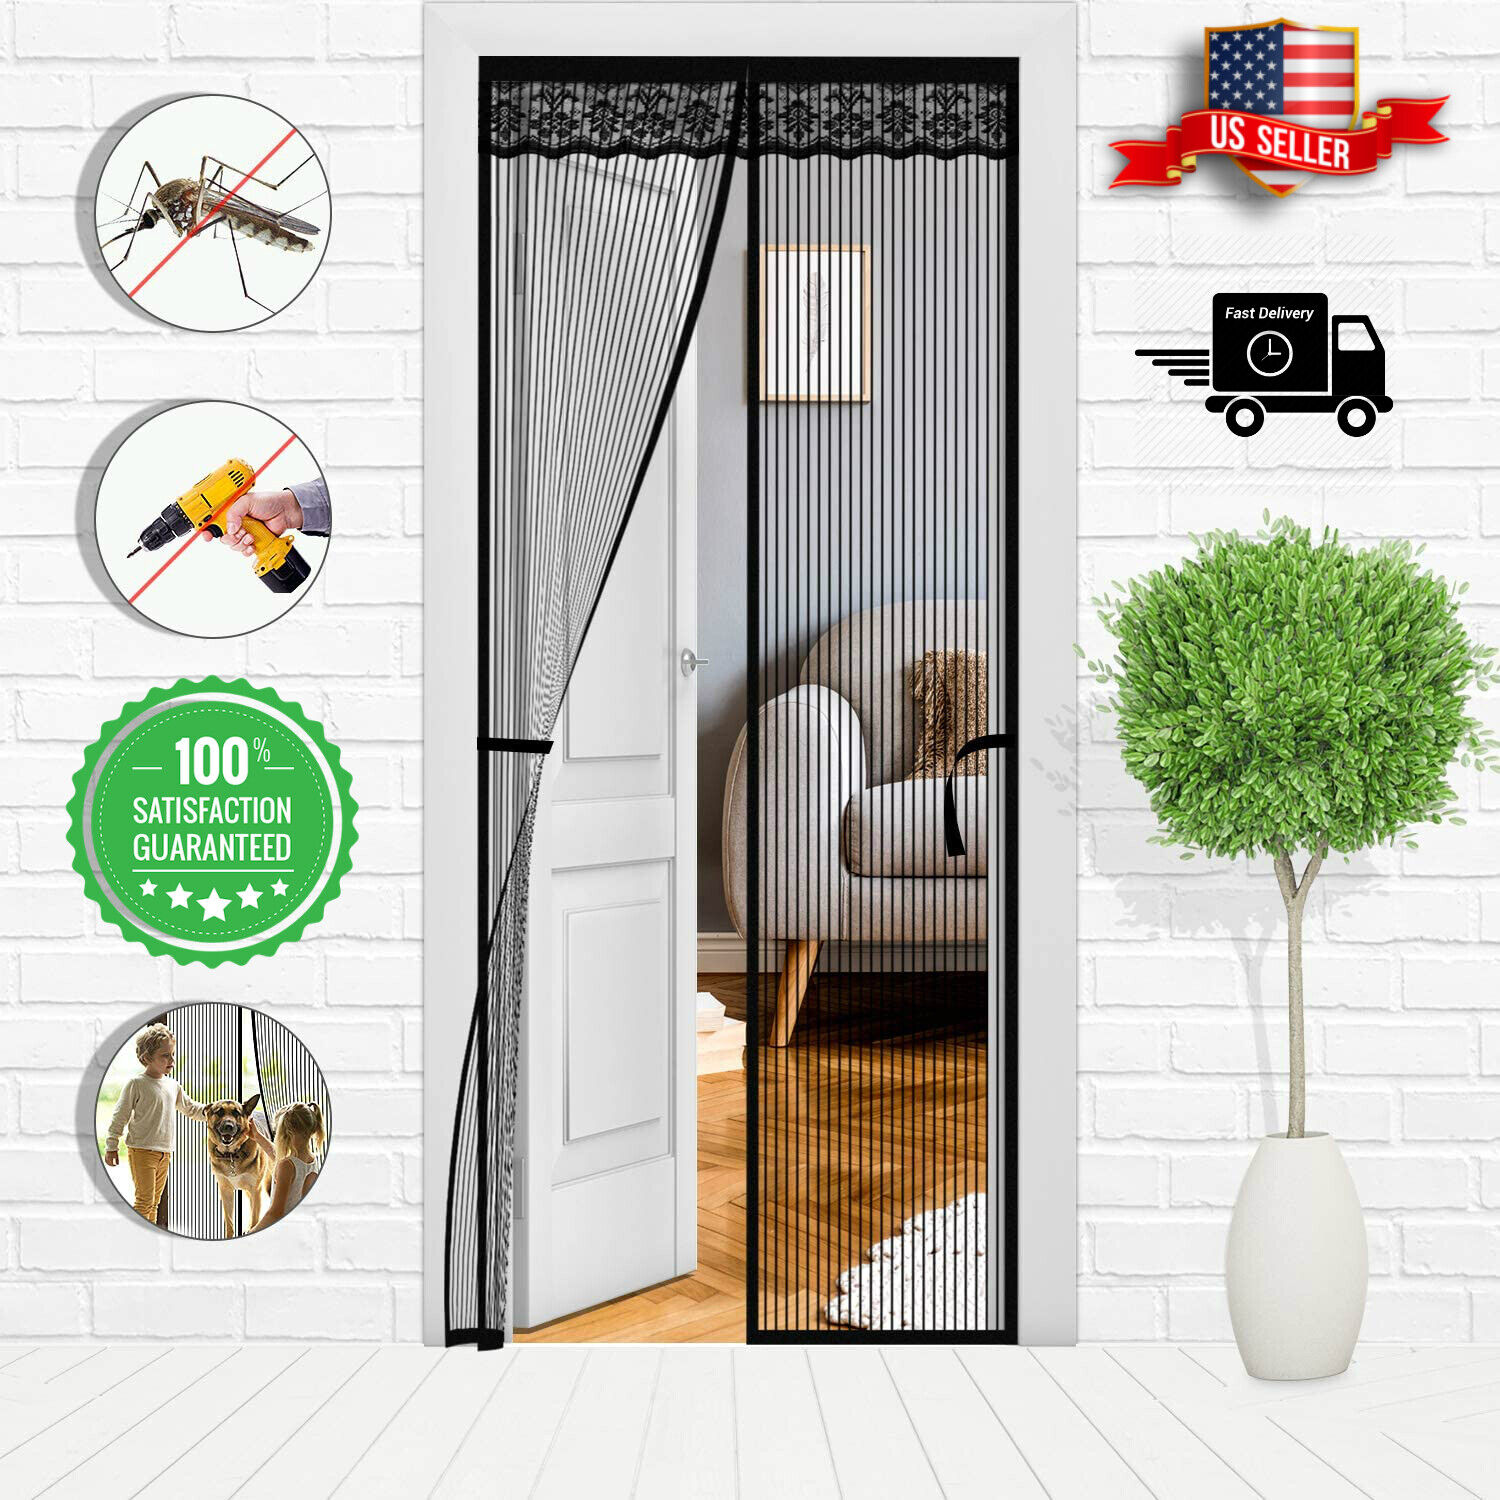 Magnetic Magic Screen Door Mesh Curtain Durable Hand Free Mo